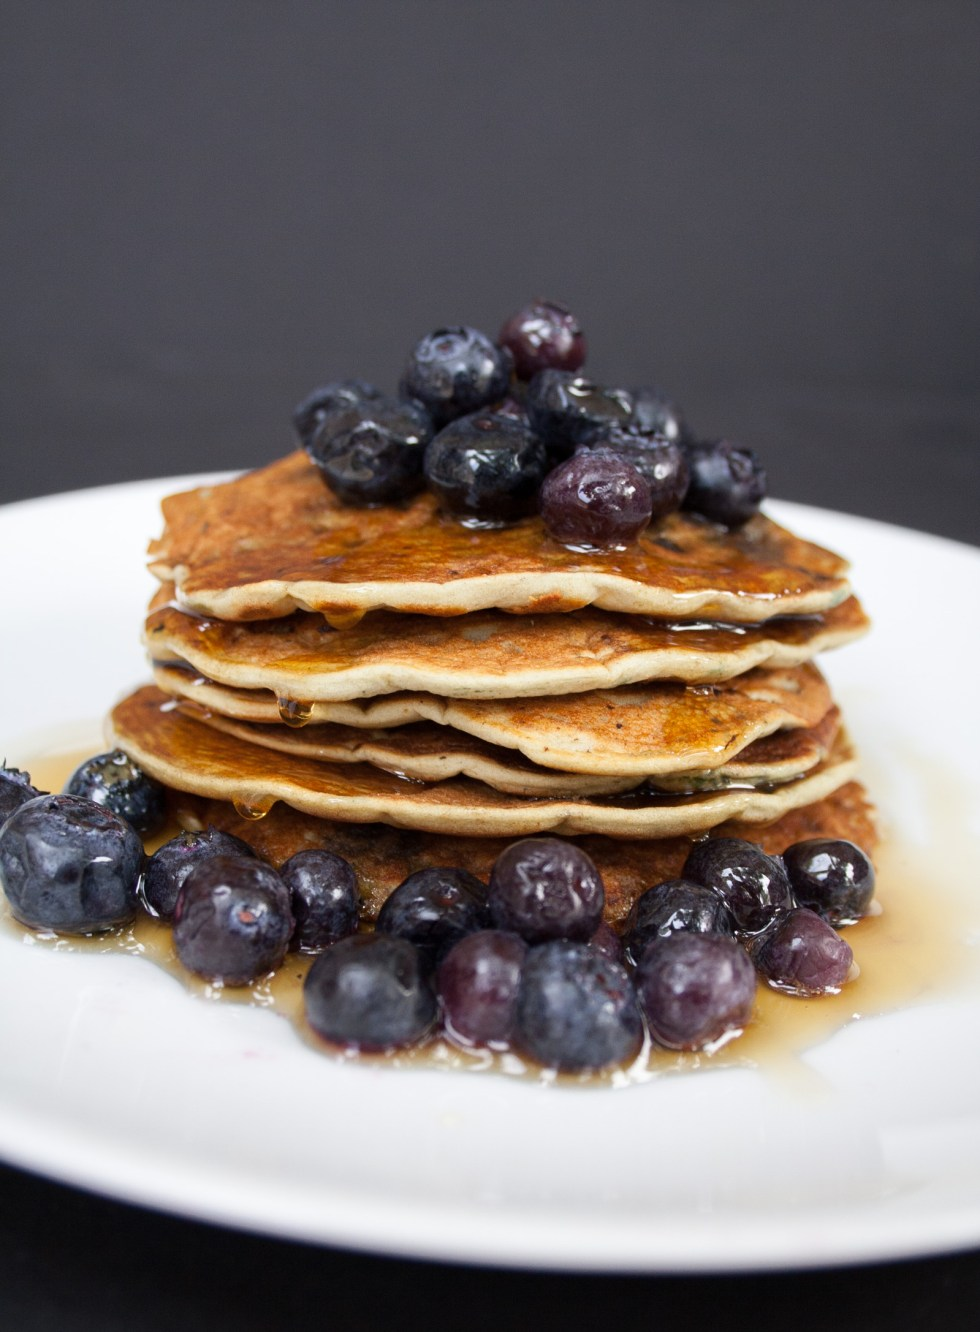 Vegan Gluten Free Blueberry Pancakes - If you are a person who loves a sweet breakfast, then these pancakes are for you!